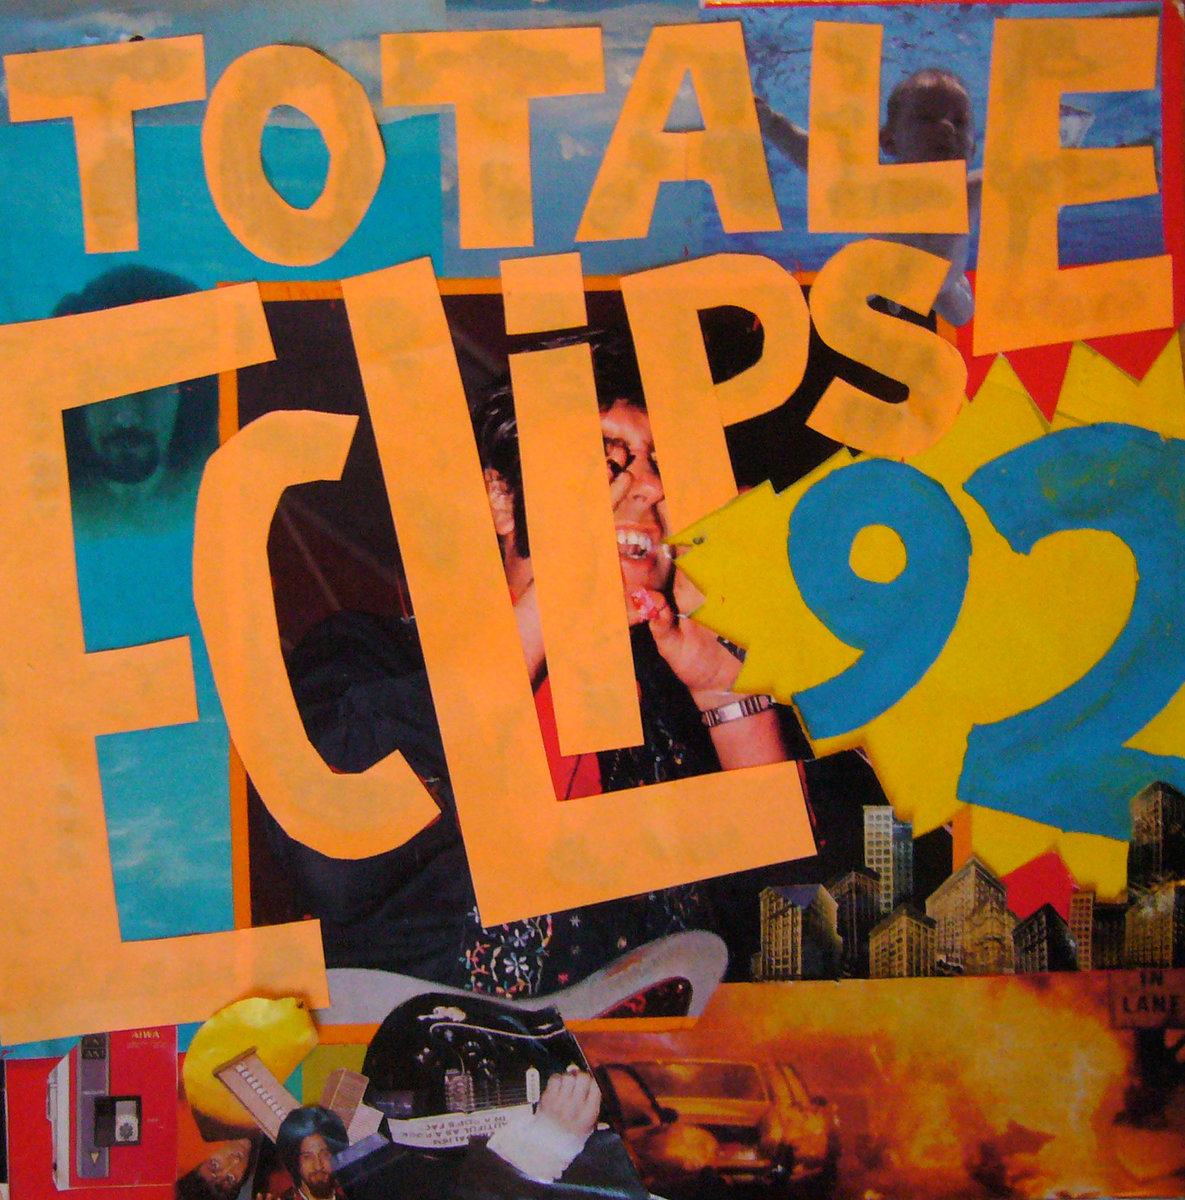 92 By Totale Eclipse